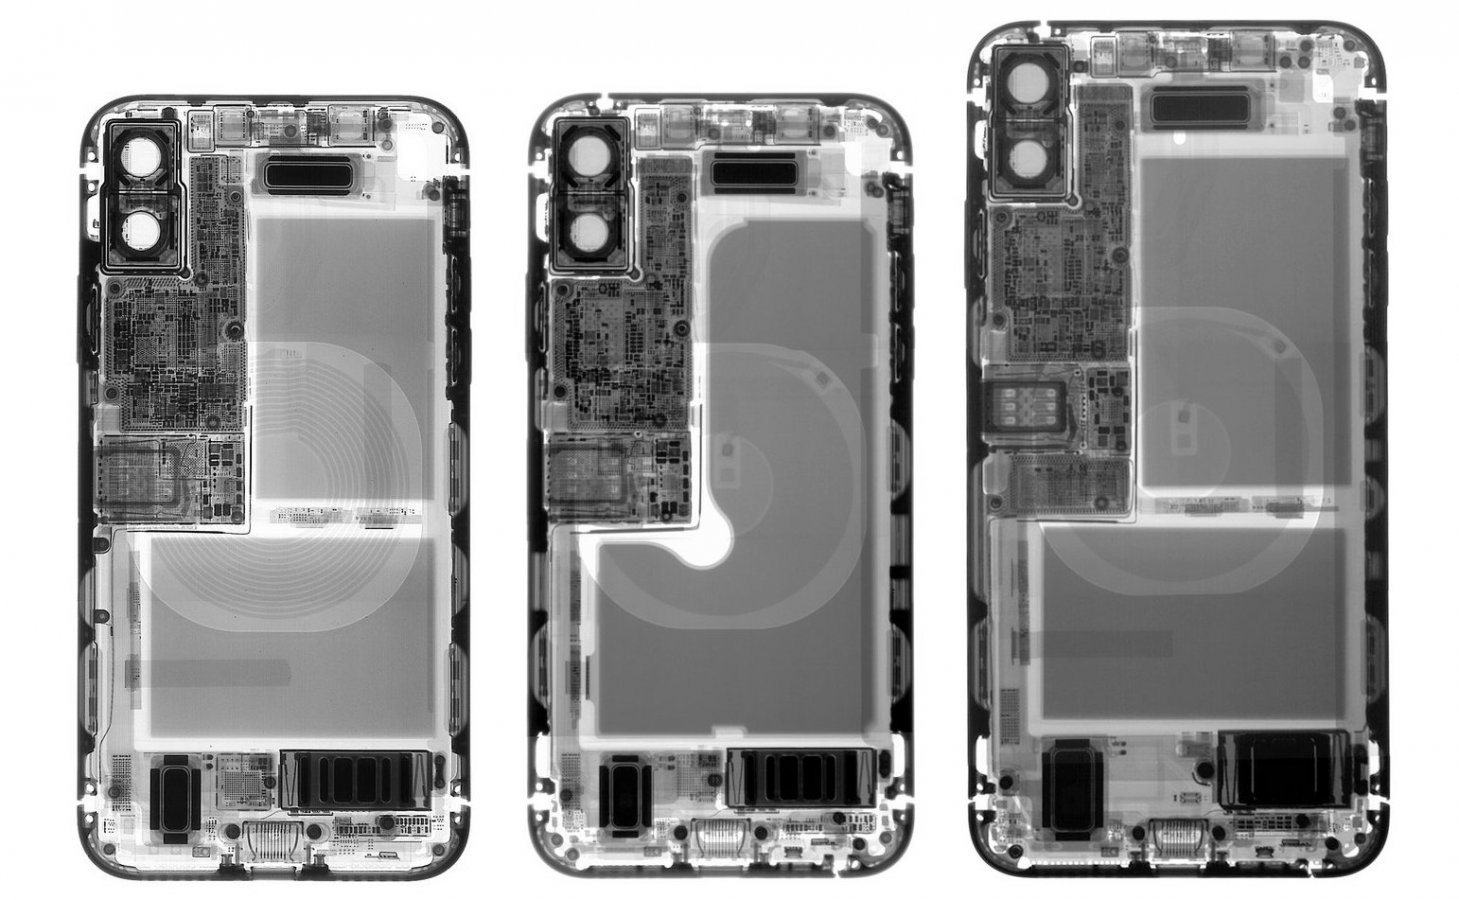 Double the iPhone XS Teardowns = Double the Wallpapers